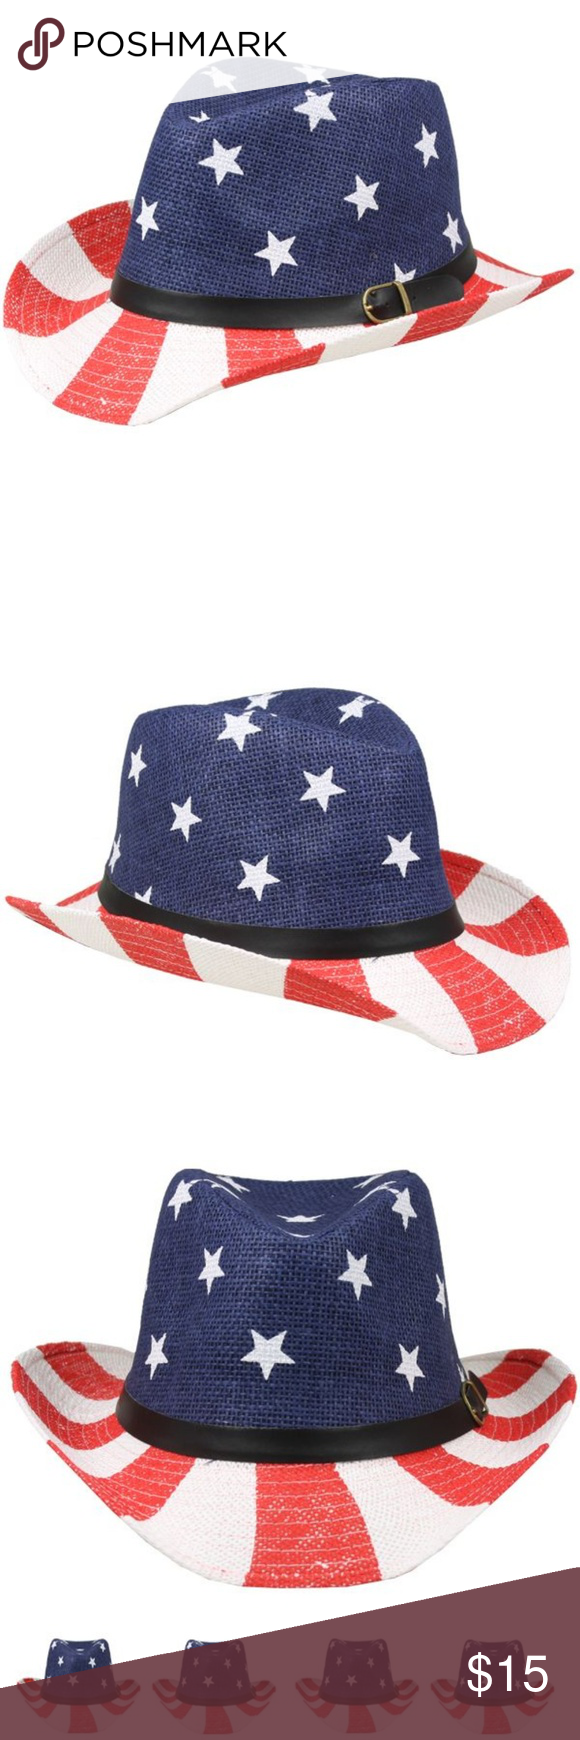 d14f1621607 KIDS AMERICAN FLAG COWBOY HAT 54CM Please check other my auction ...